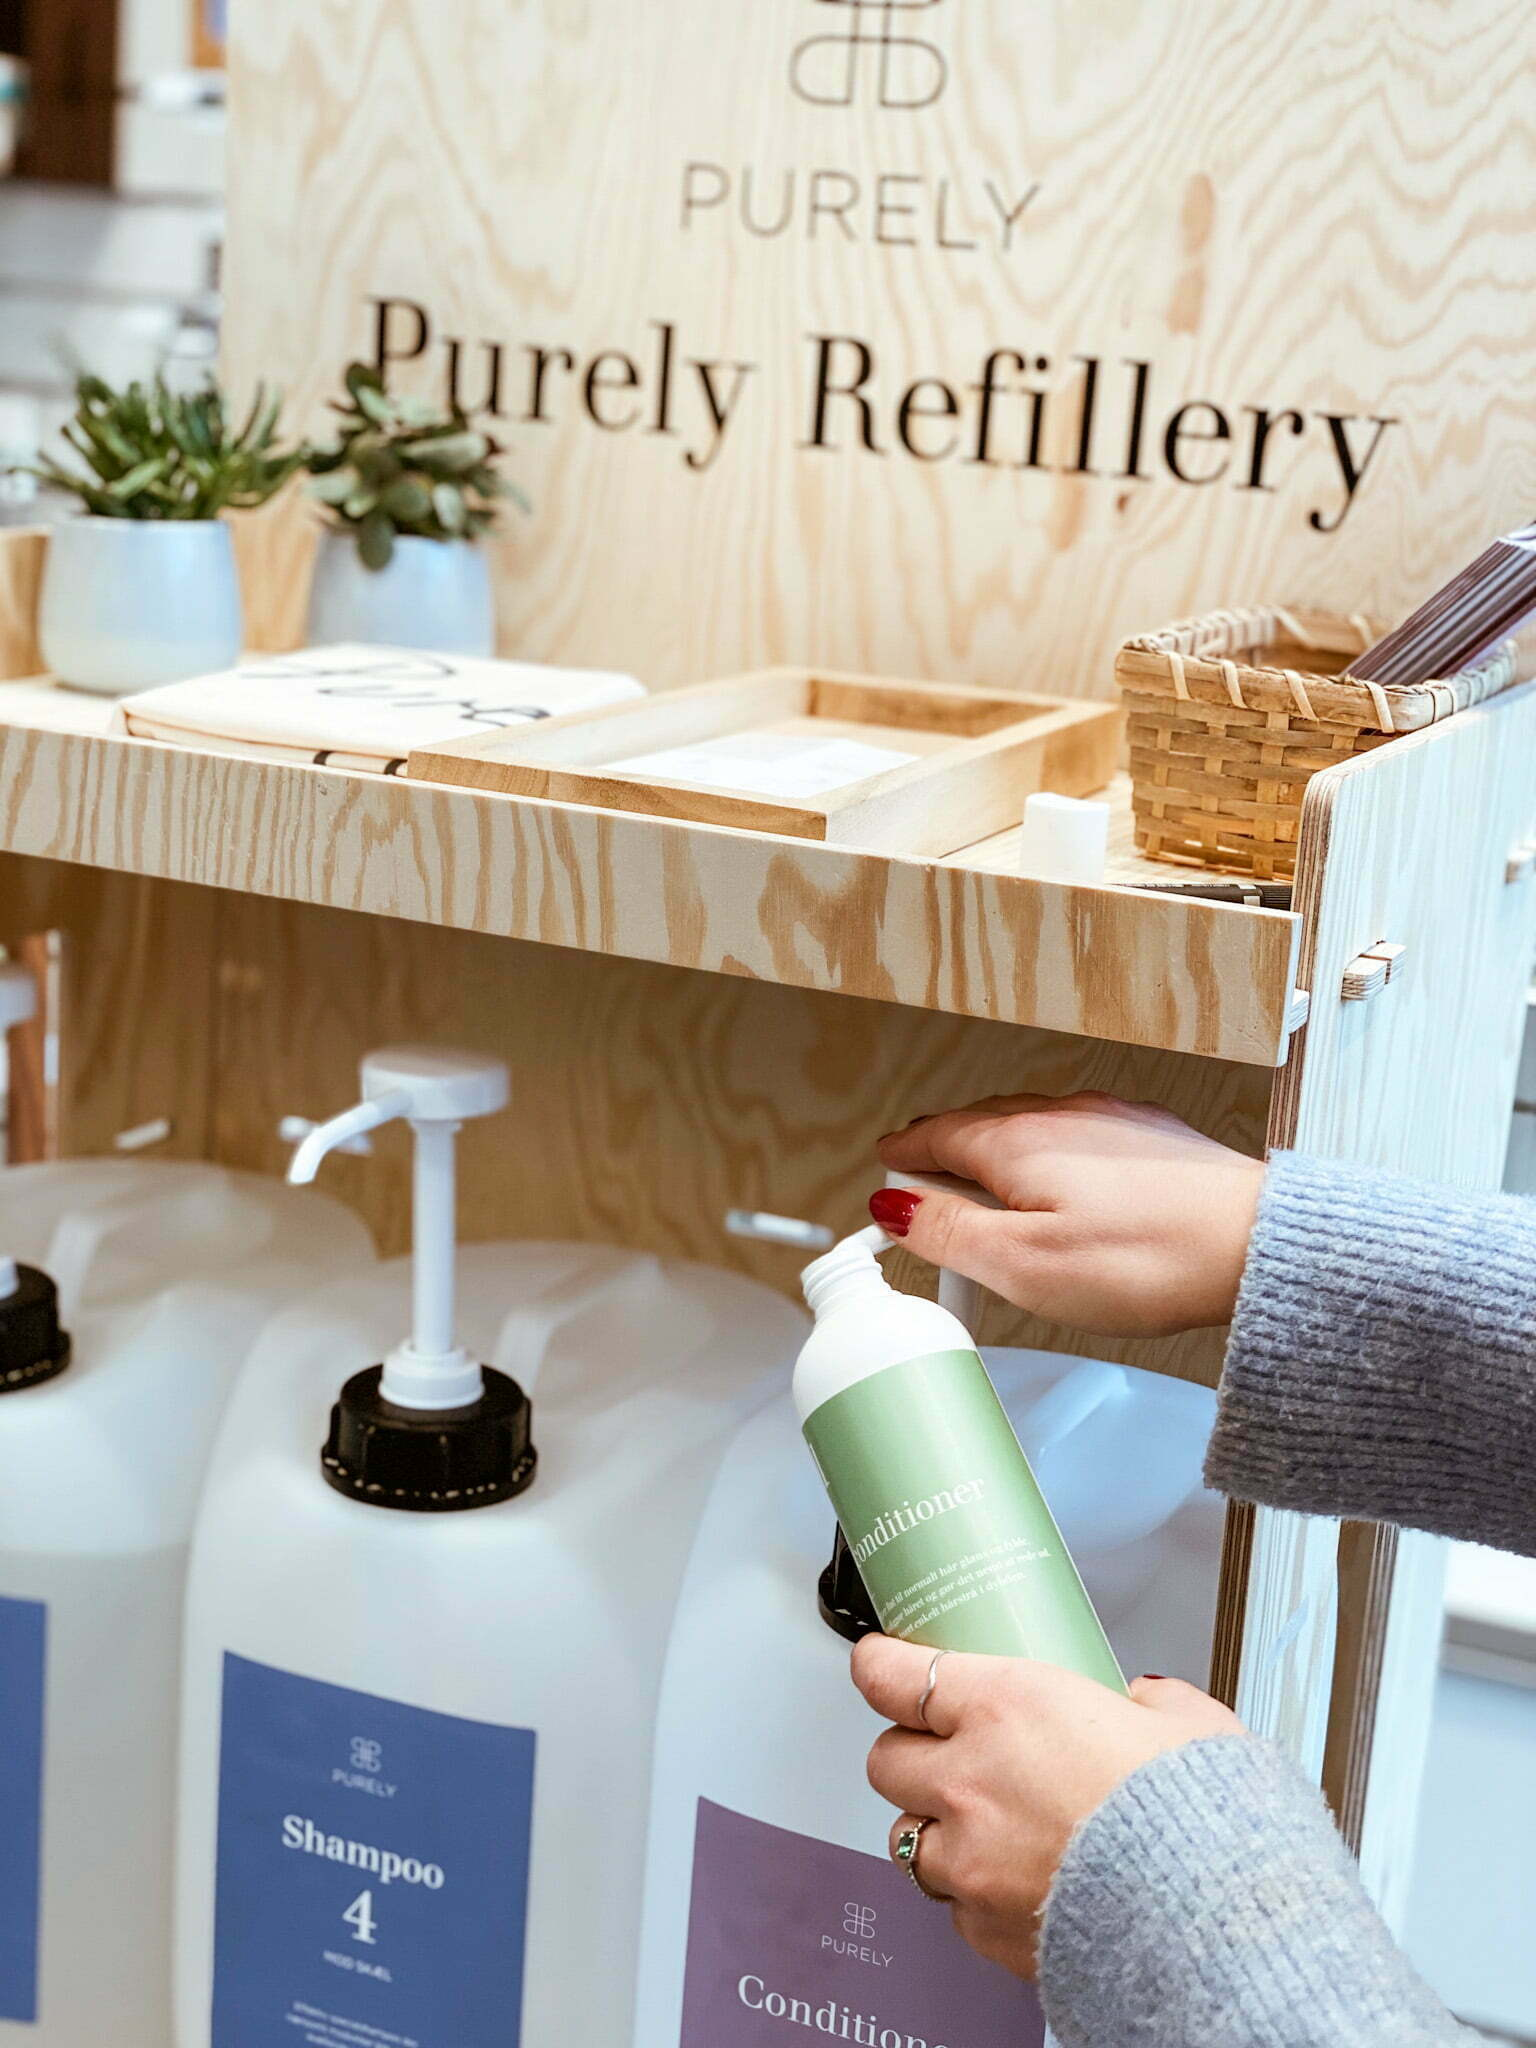 Purely Refillery